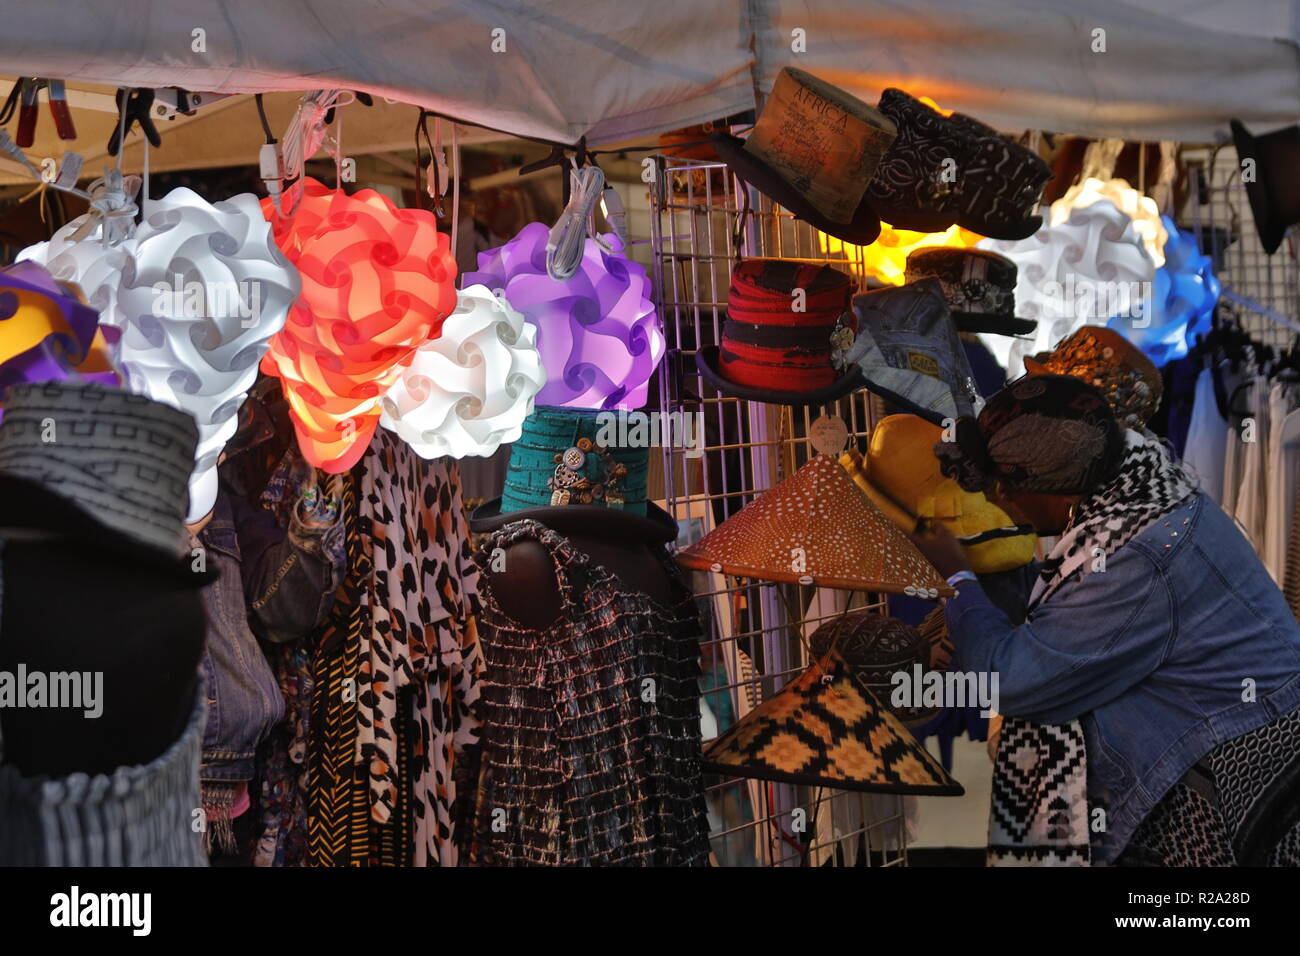 Vendors provide gifts and food at the 61st Monterey Jazz Festival - MONTEREY, CALIFORNIA Stock Photo